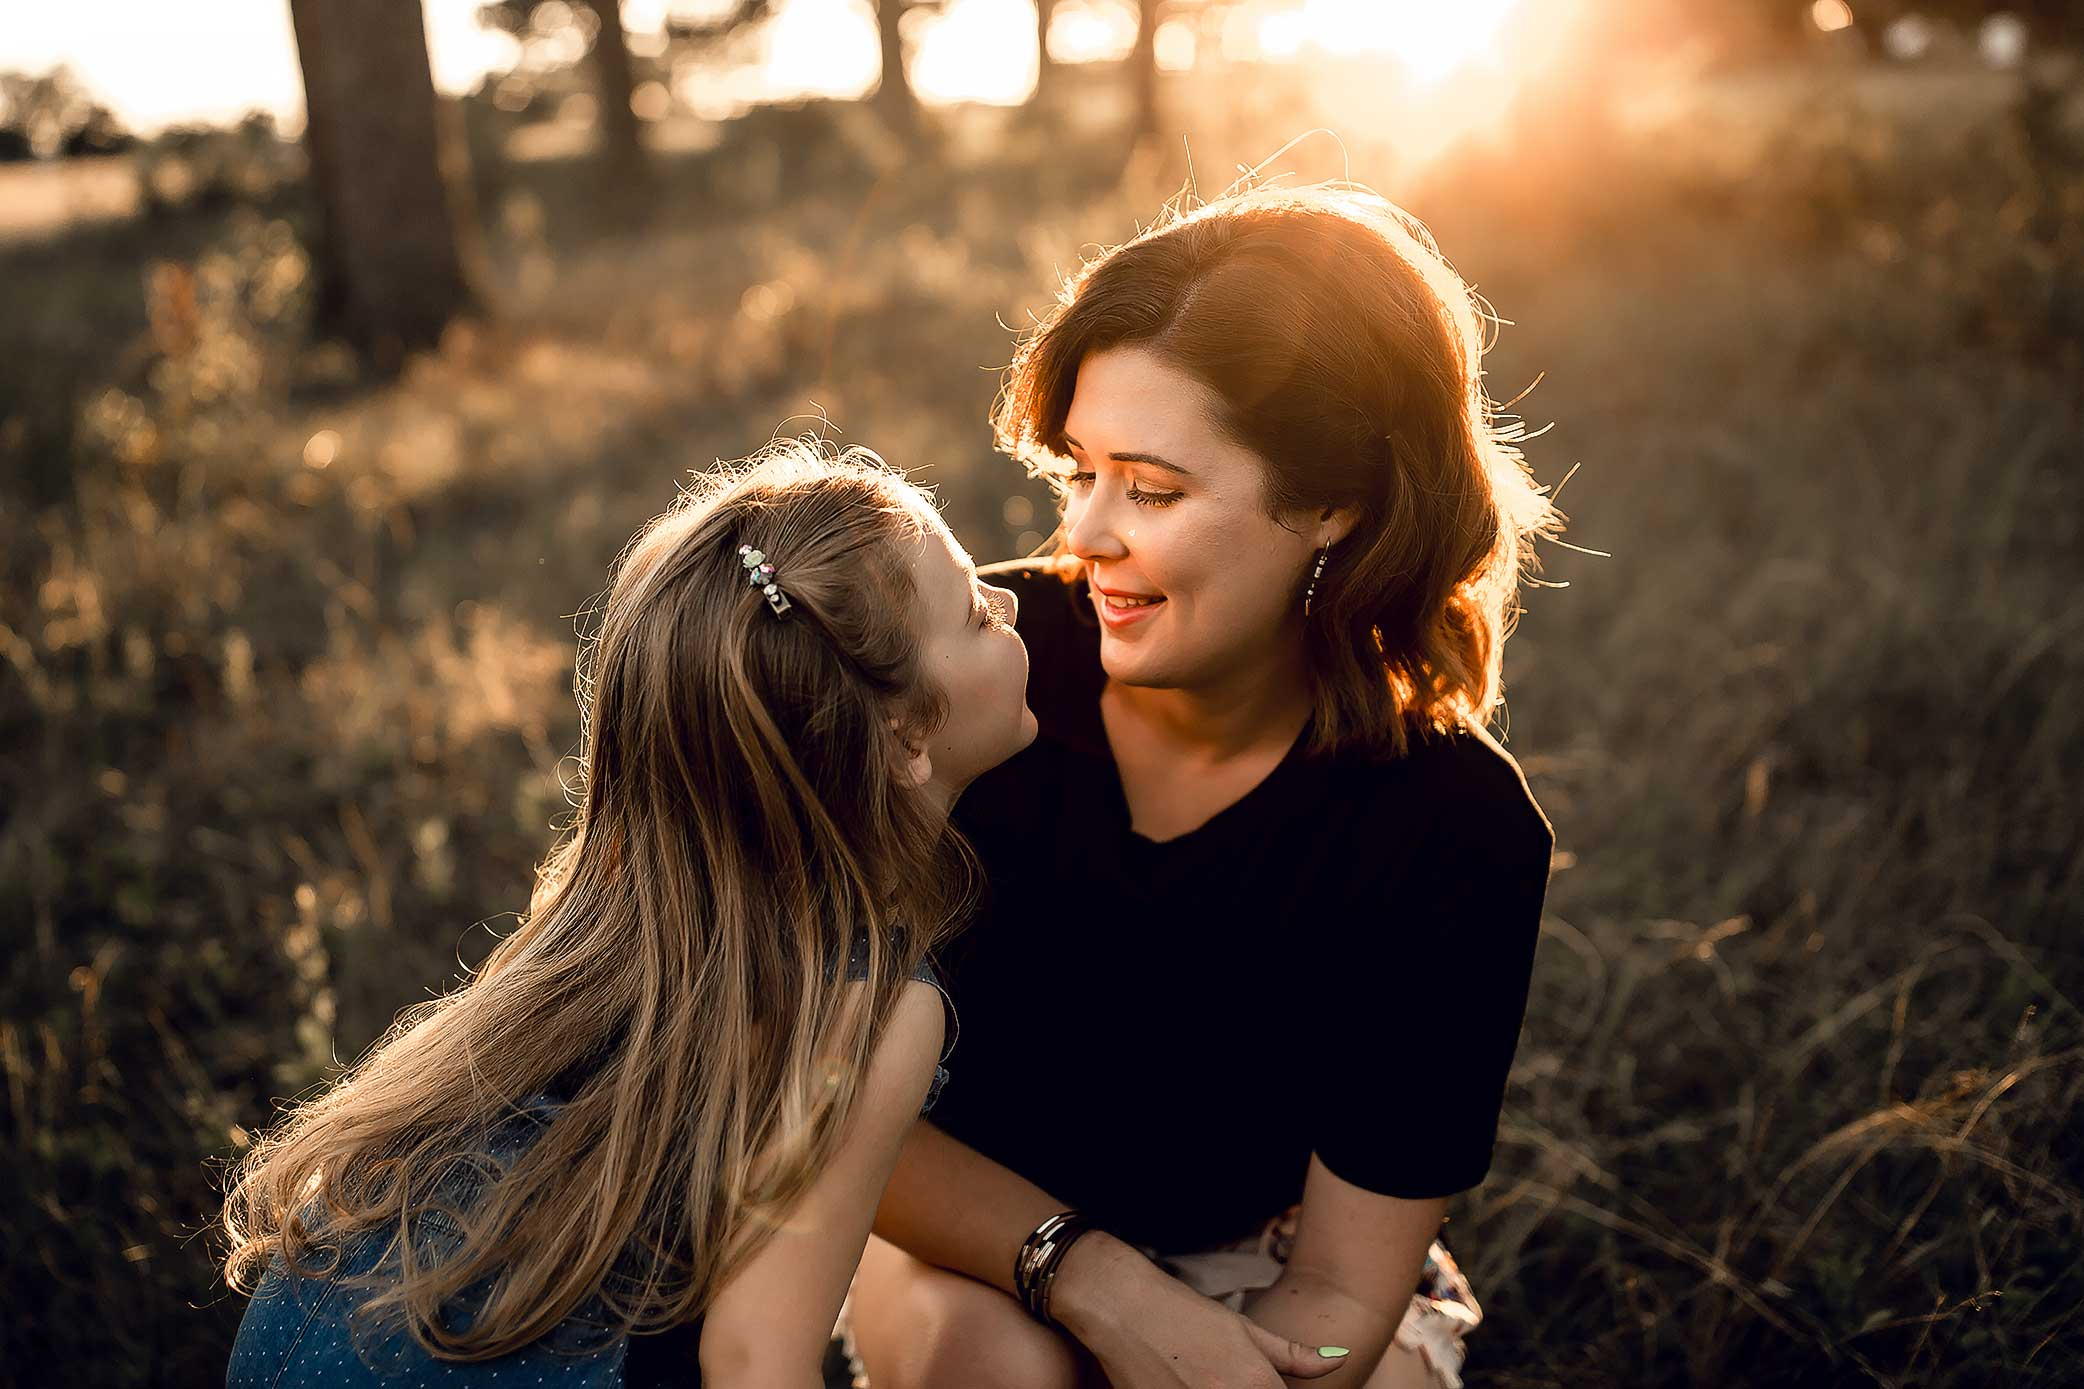 shelby-schiller-photography-mommy-and-me-pictures-at-sunset.jpg